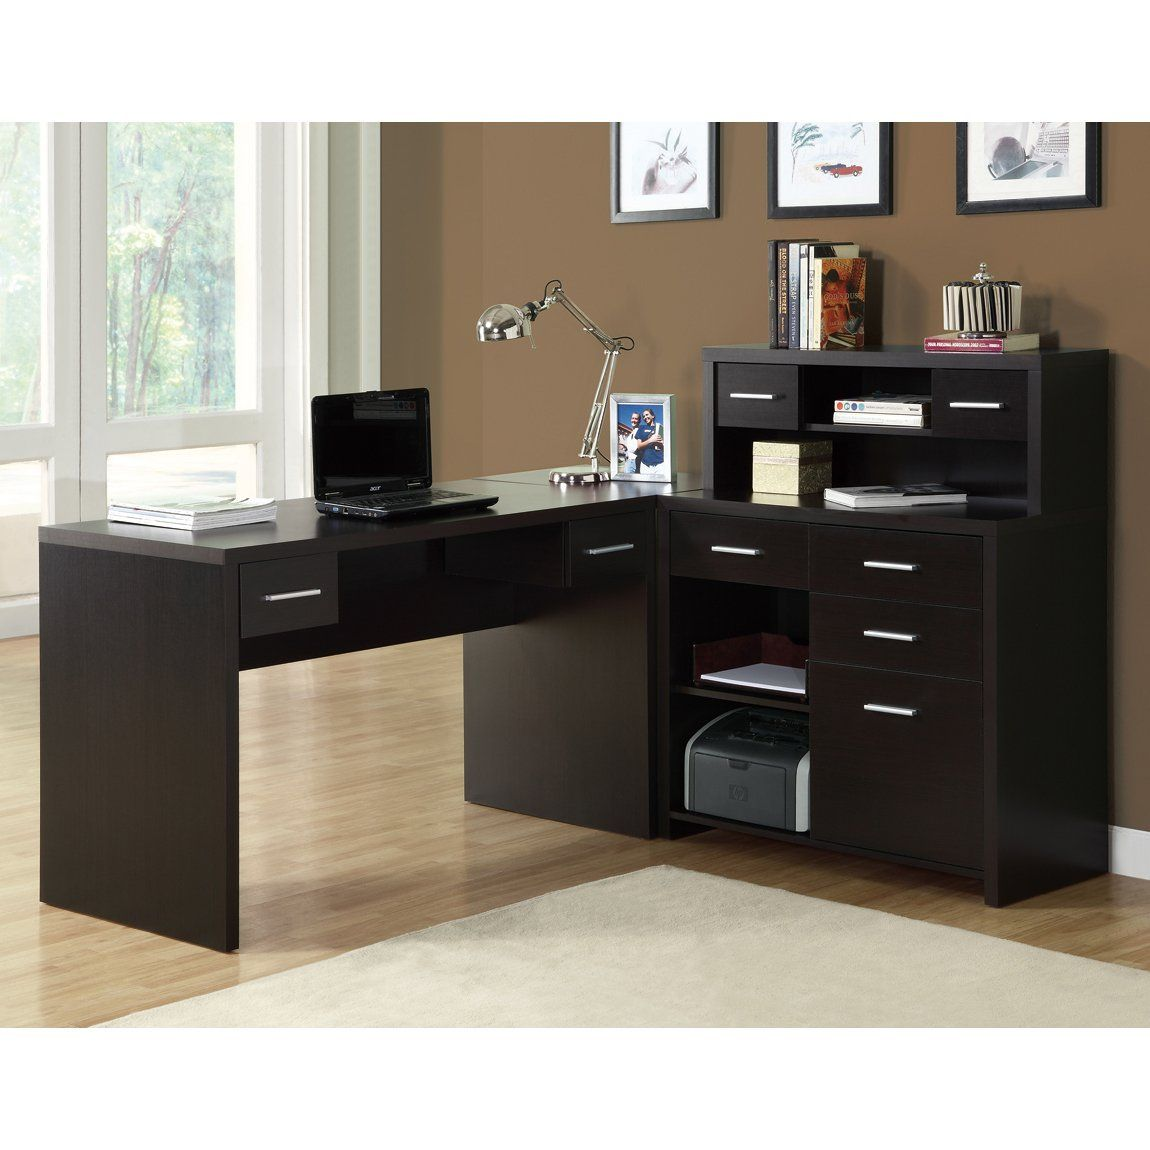 Lowes Office Desks Home Furniture Sets Check More At Http Michael